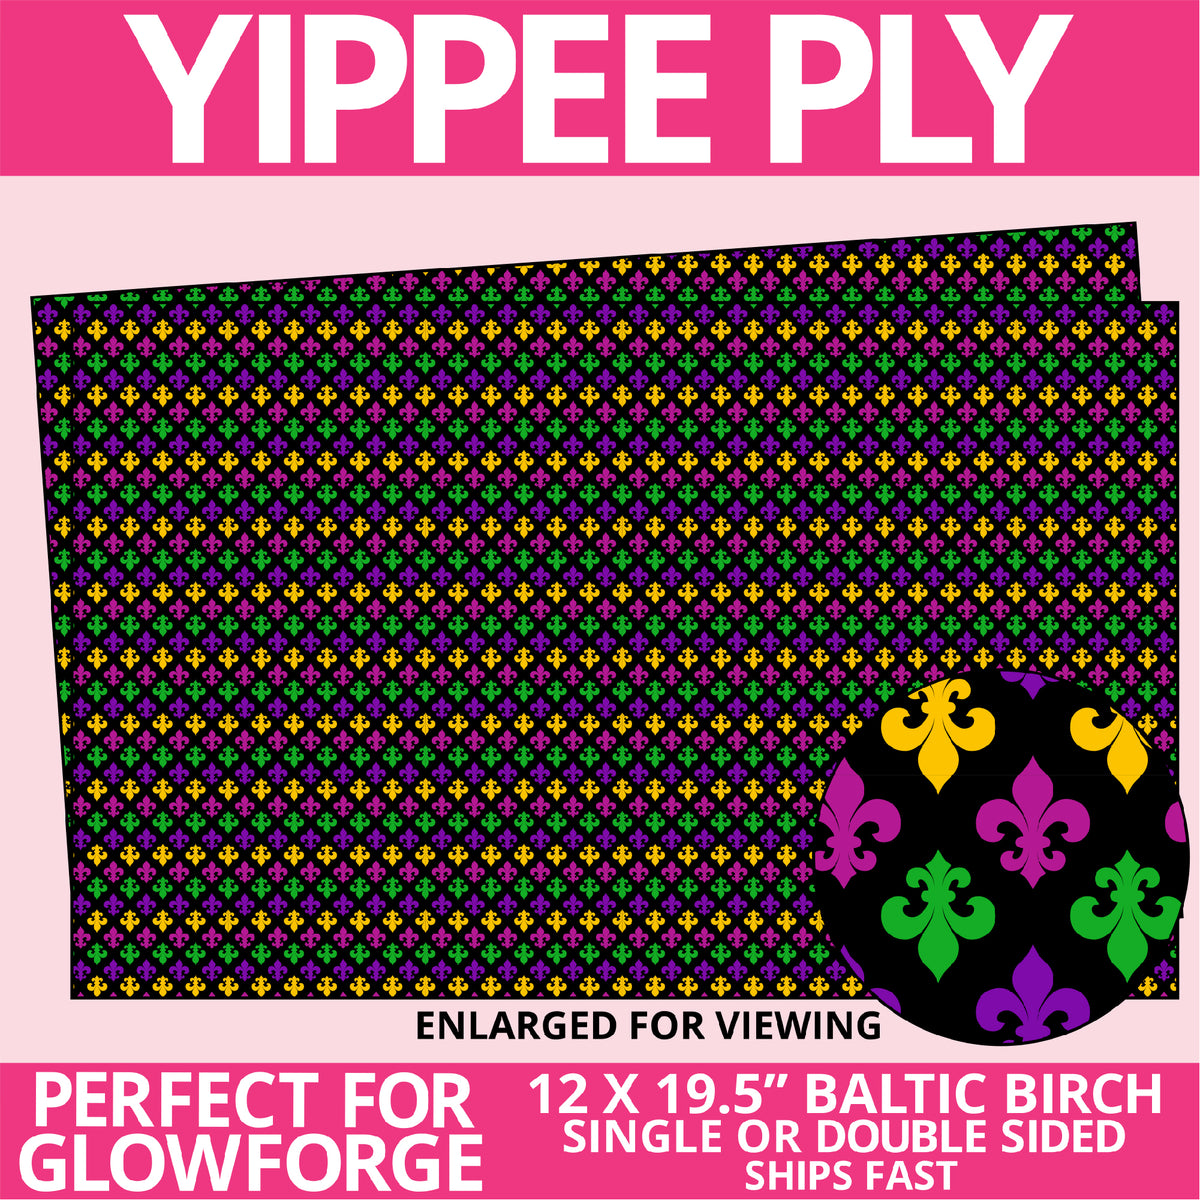 Yippee Ply Mardi Gras Mardi Parti Pattern on Birch Plywood 1031